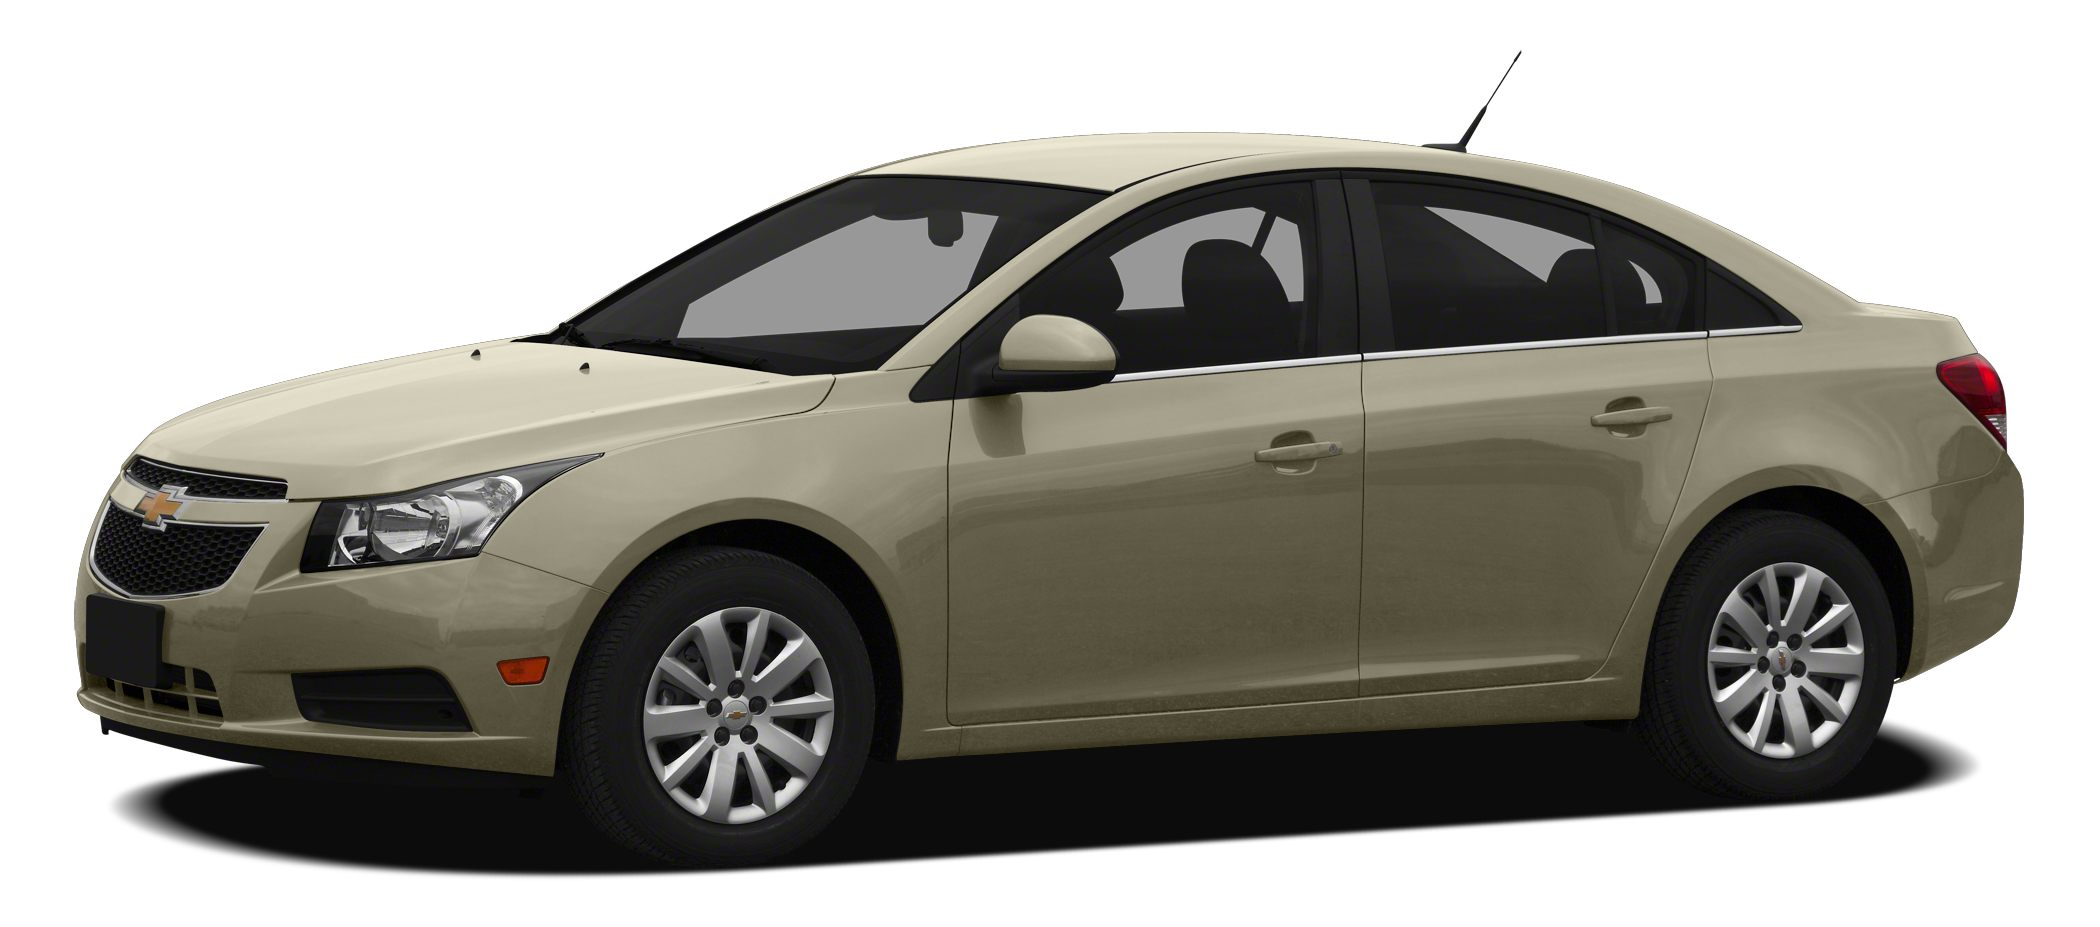 2012 Chevrolet Cruze 1LT Looks and drives like new Low miles indicate the vehicle is merely gentl